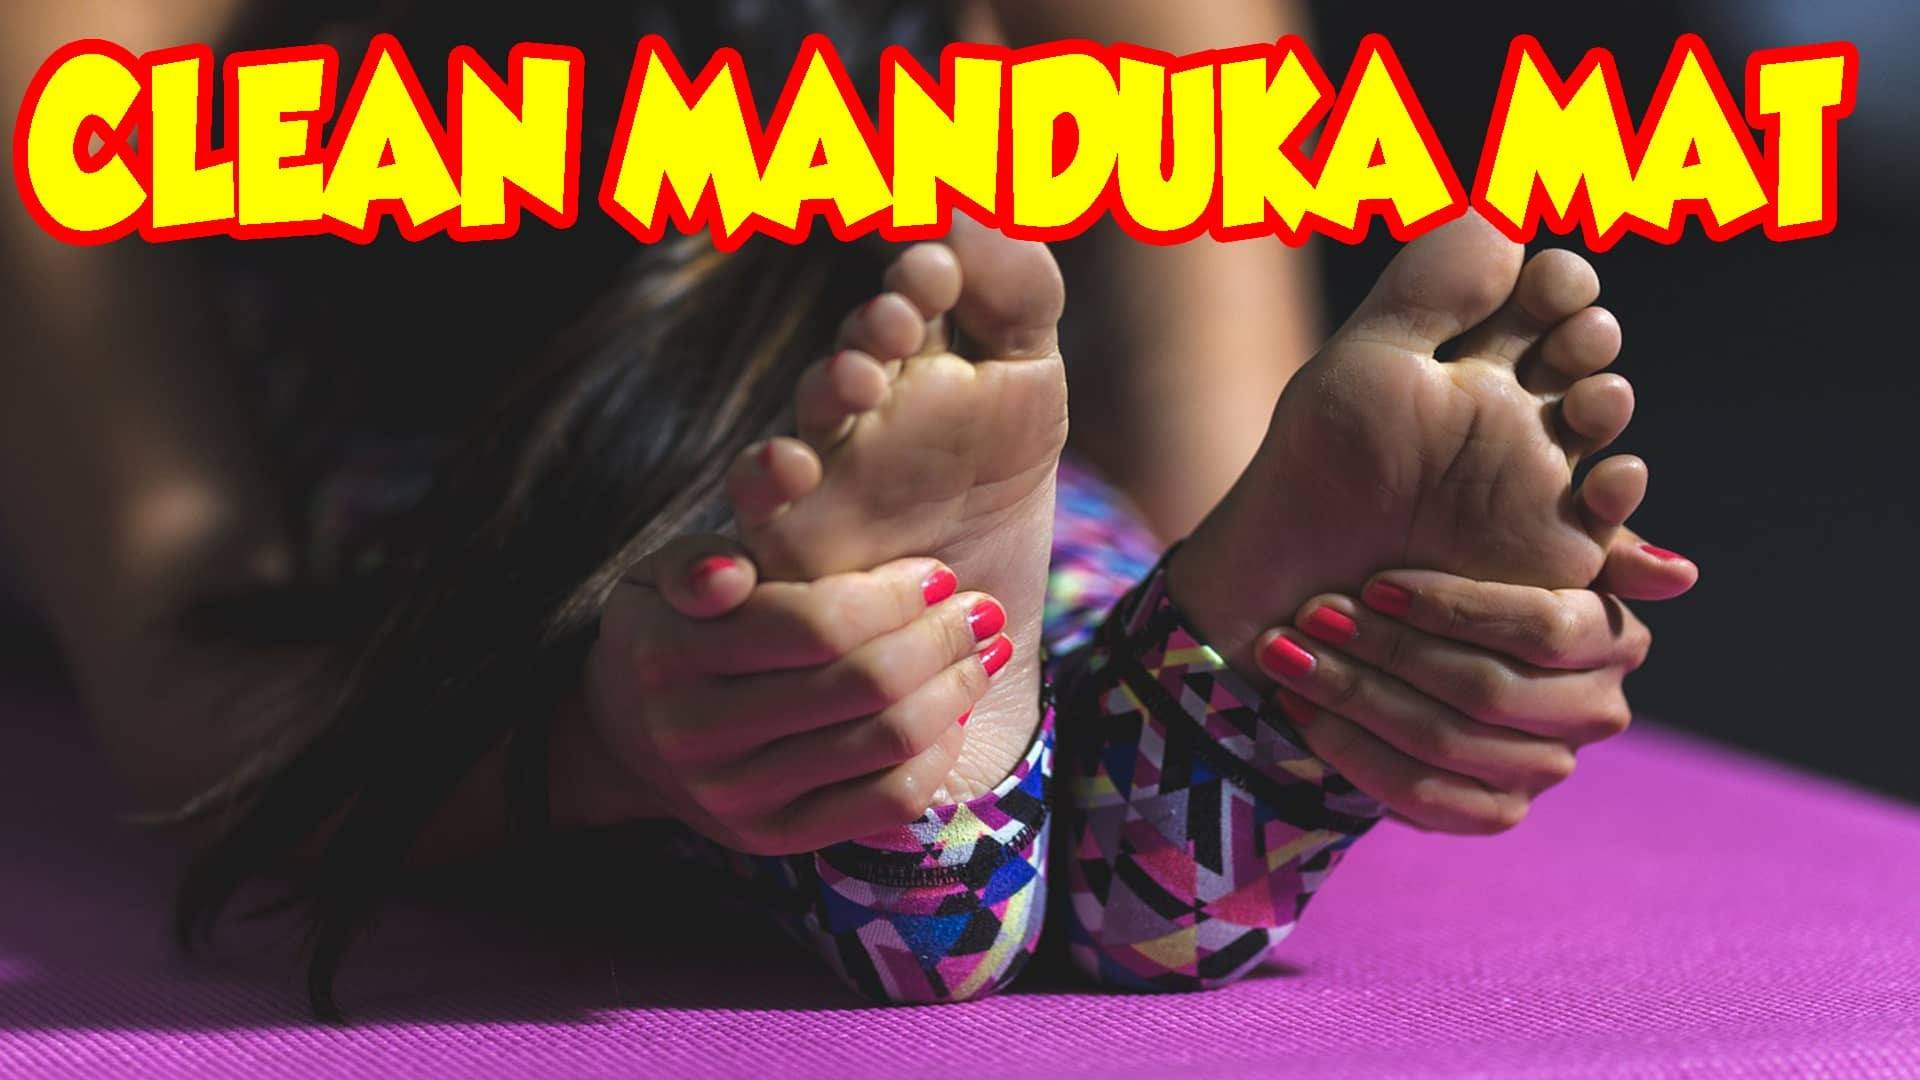 How To Clean Manduka Yoga Mat Step By Step Guide For Beginner